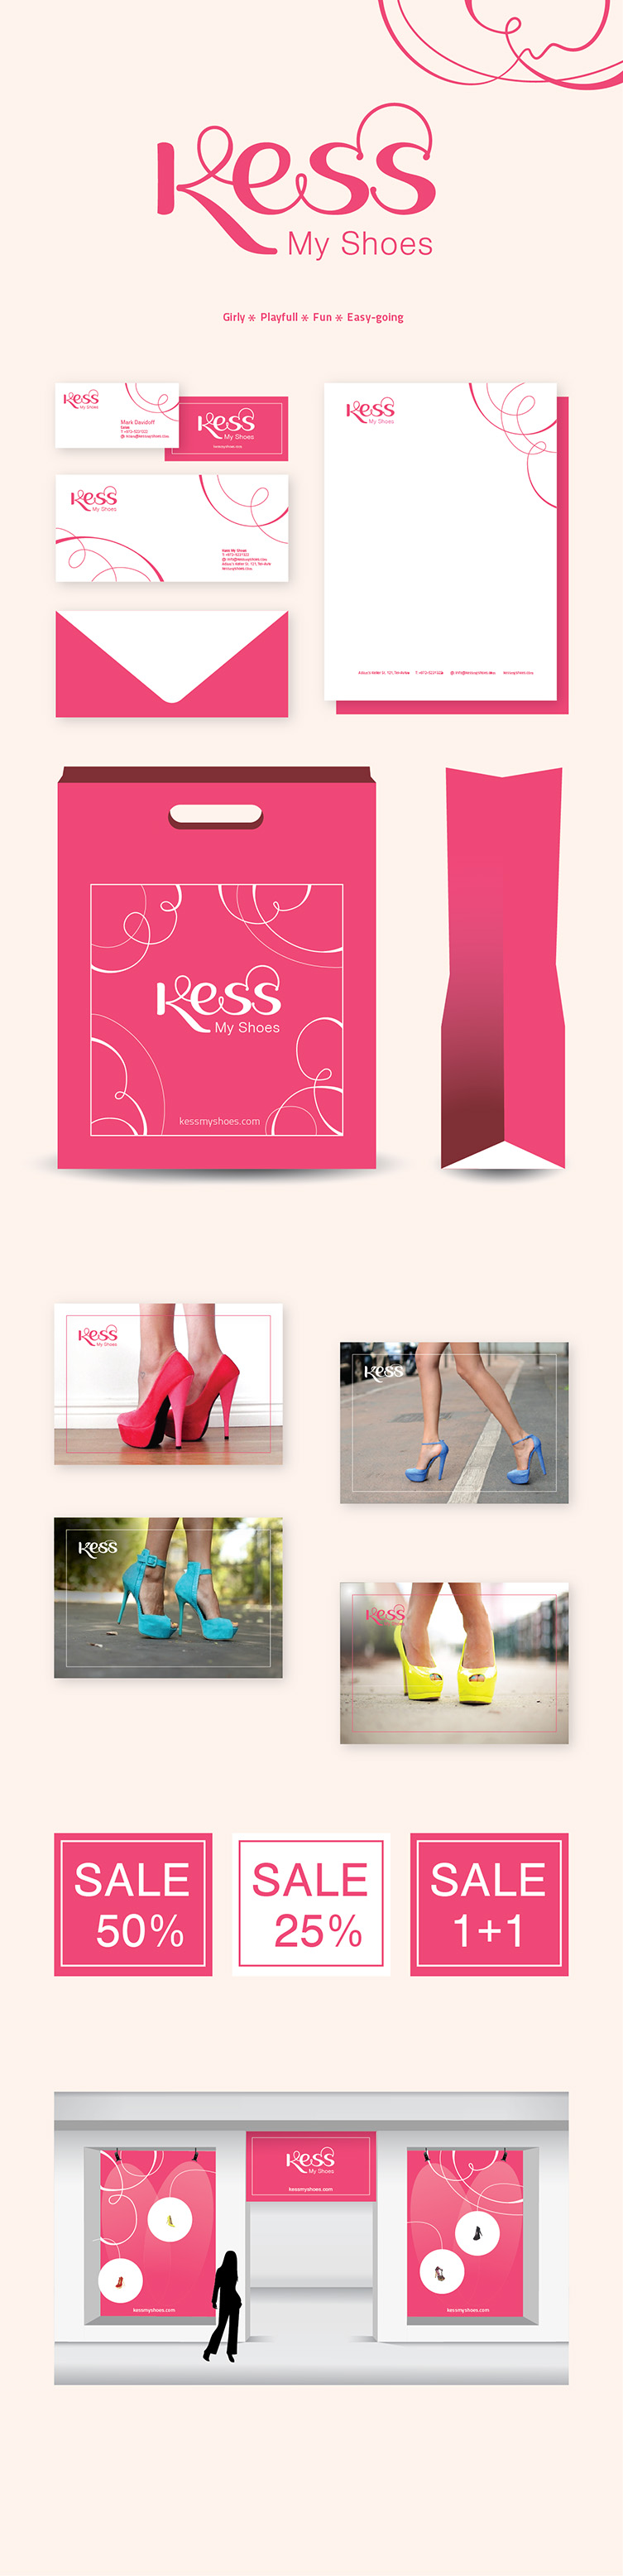 Kess shoes branding